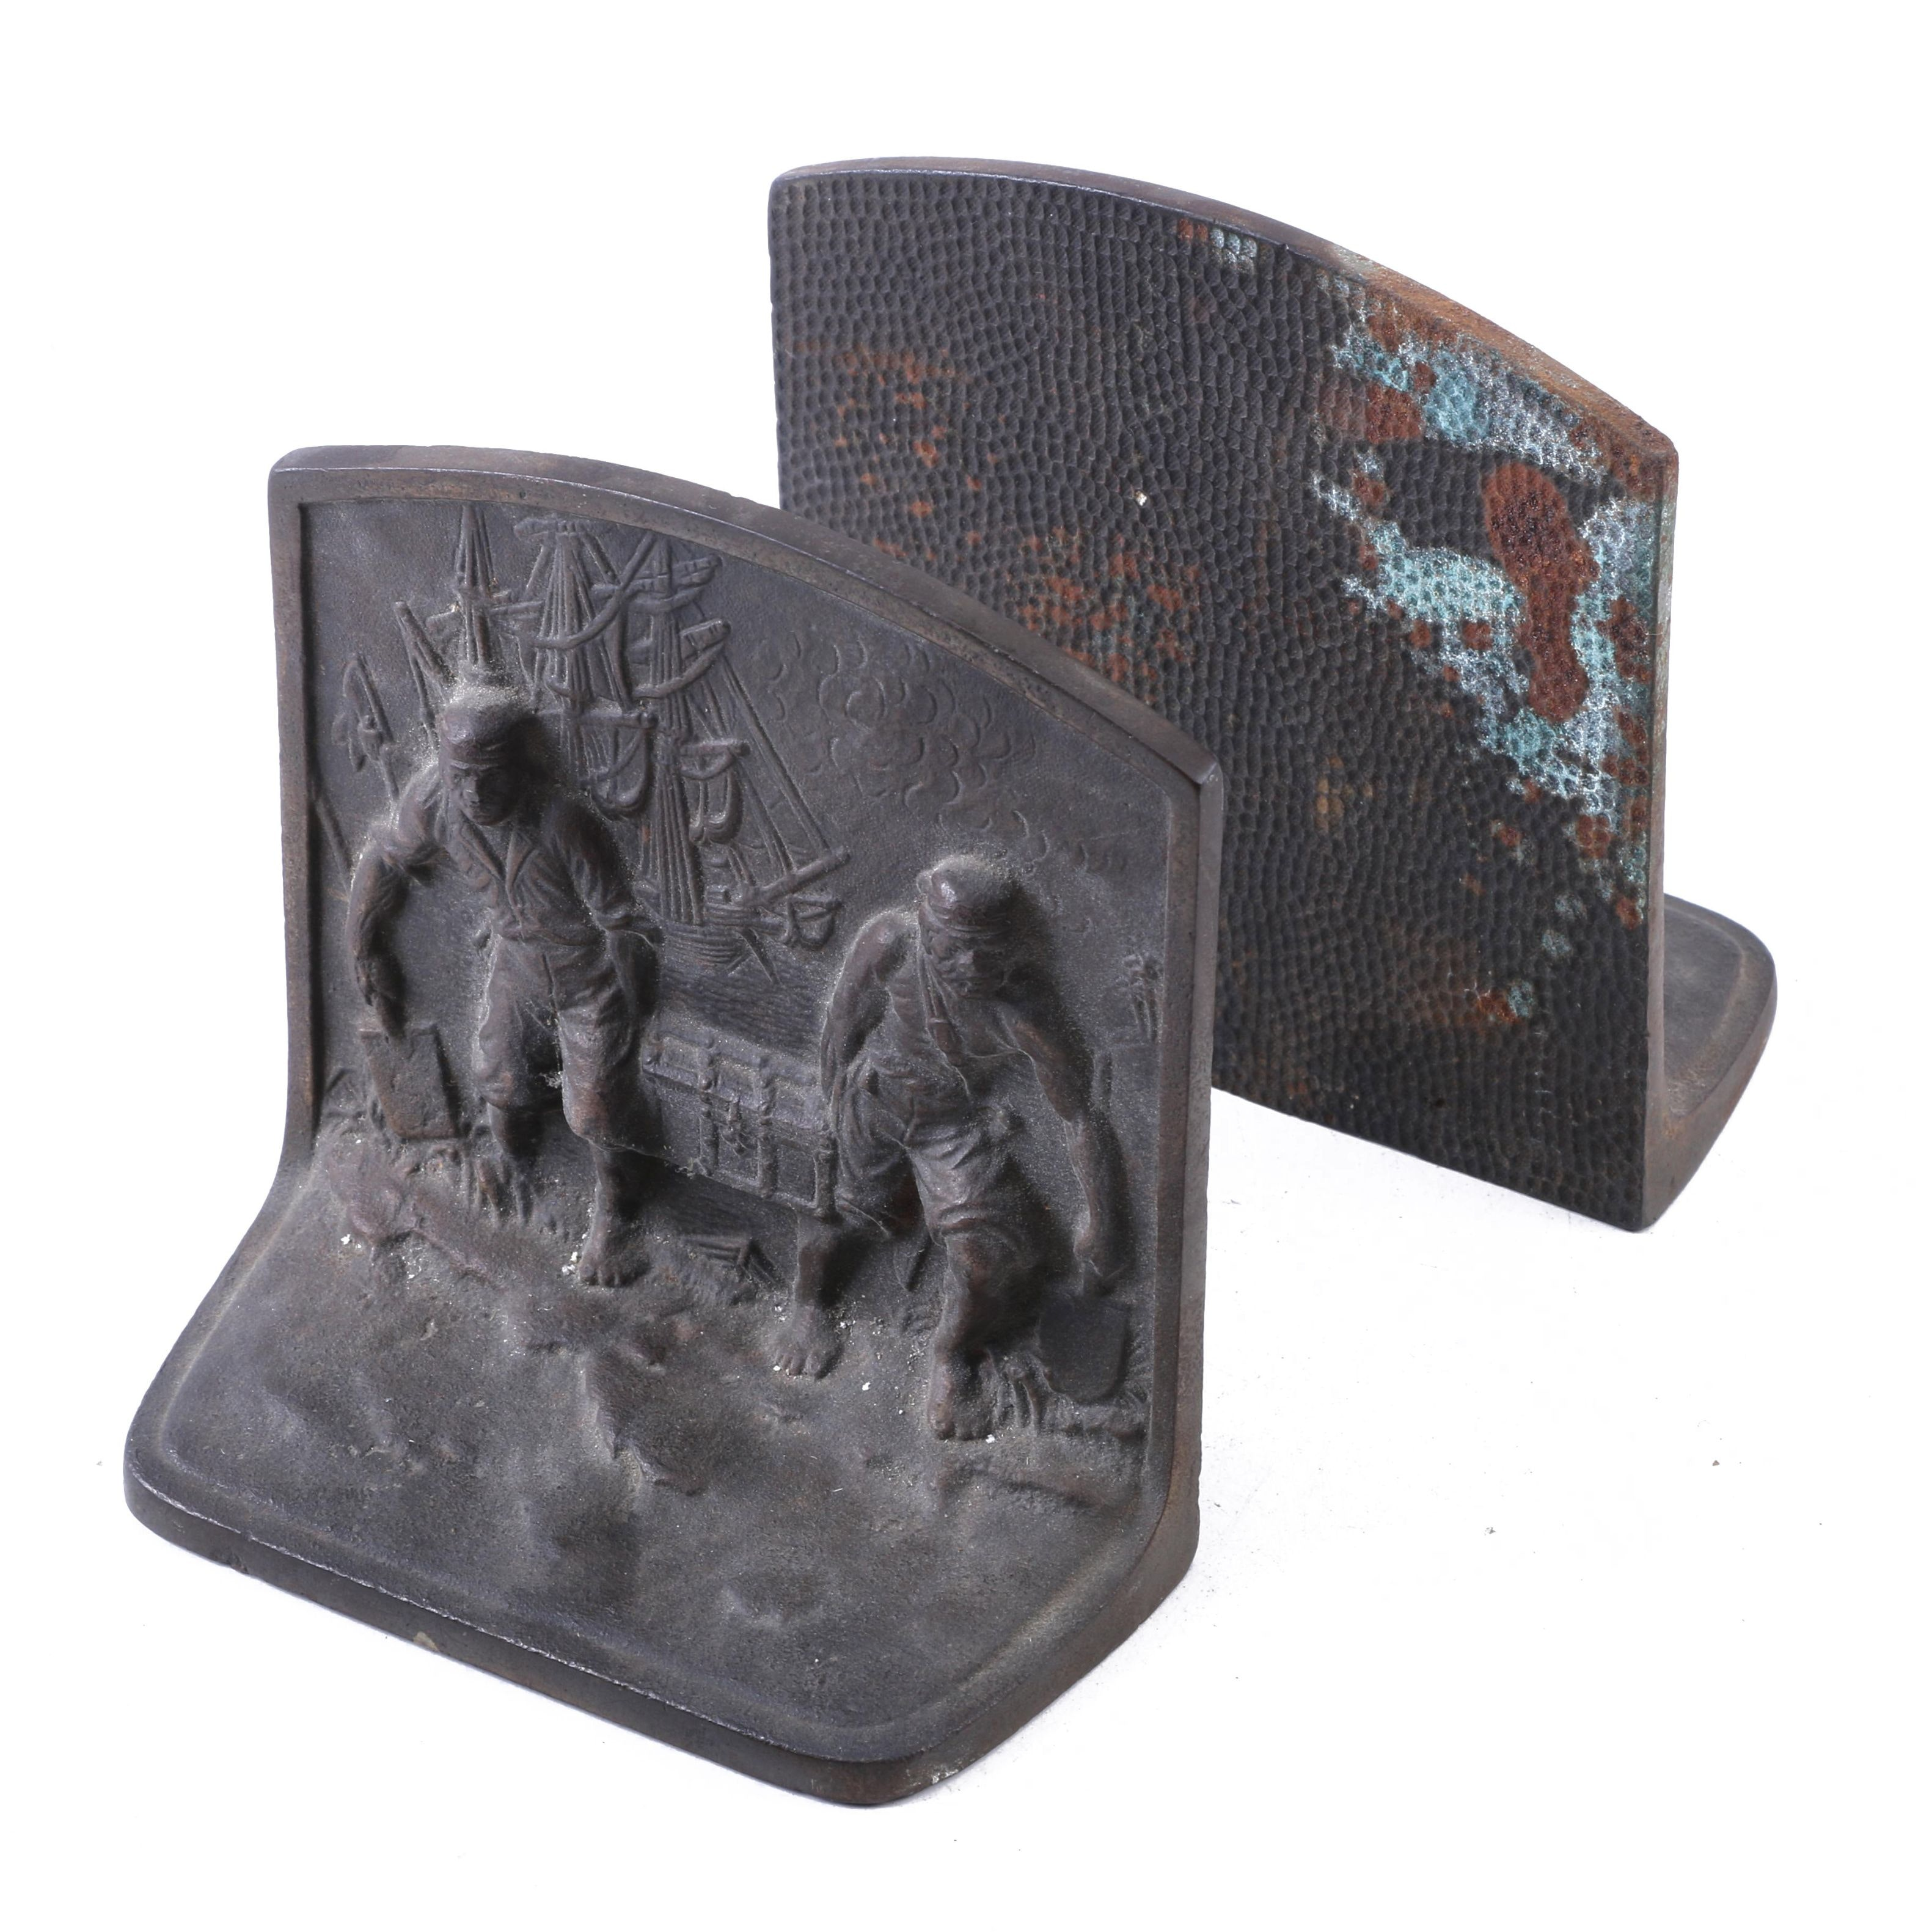 Cast Iron Pirate Bookends Attributed to Hubley, Circa 1920-30s